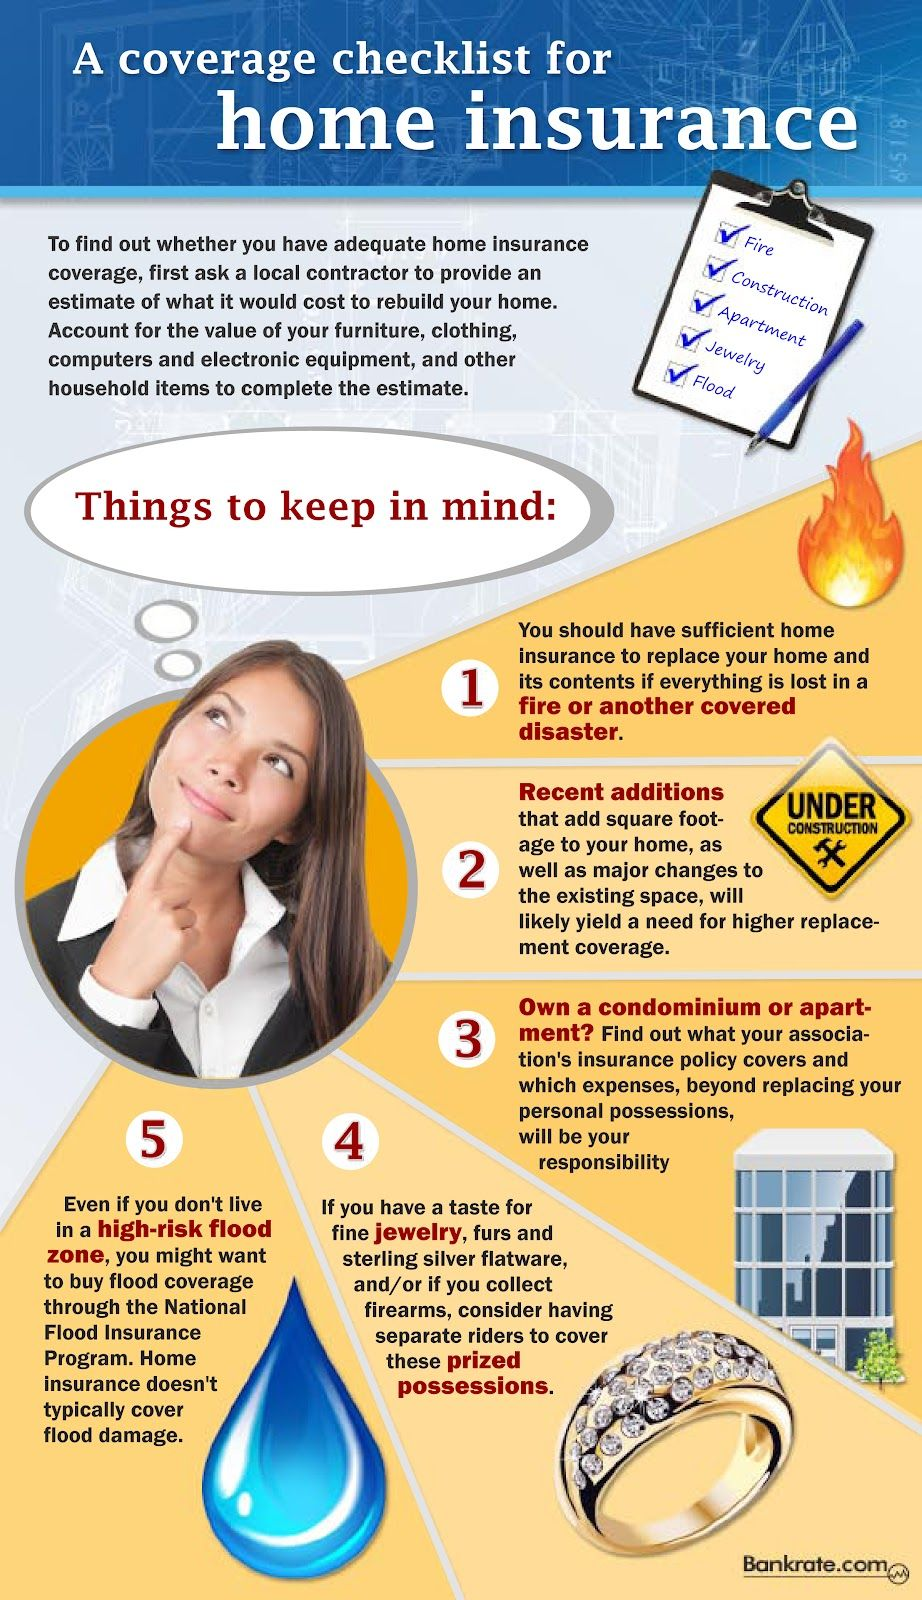 Reassessing Homeowners Insurance A Checklist Home Insurance Farmers Insurance Content Insurance